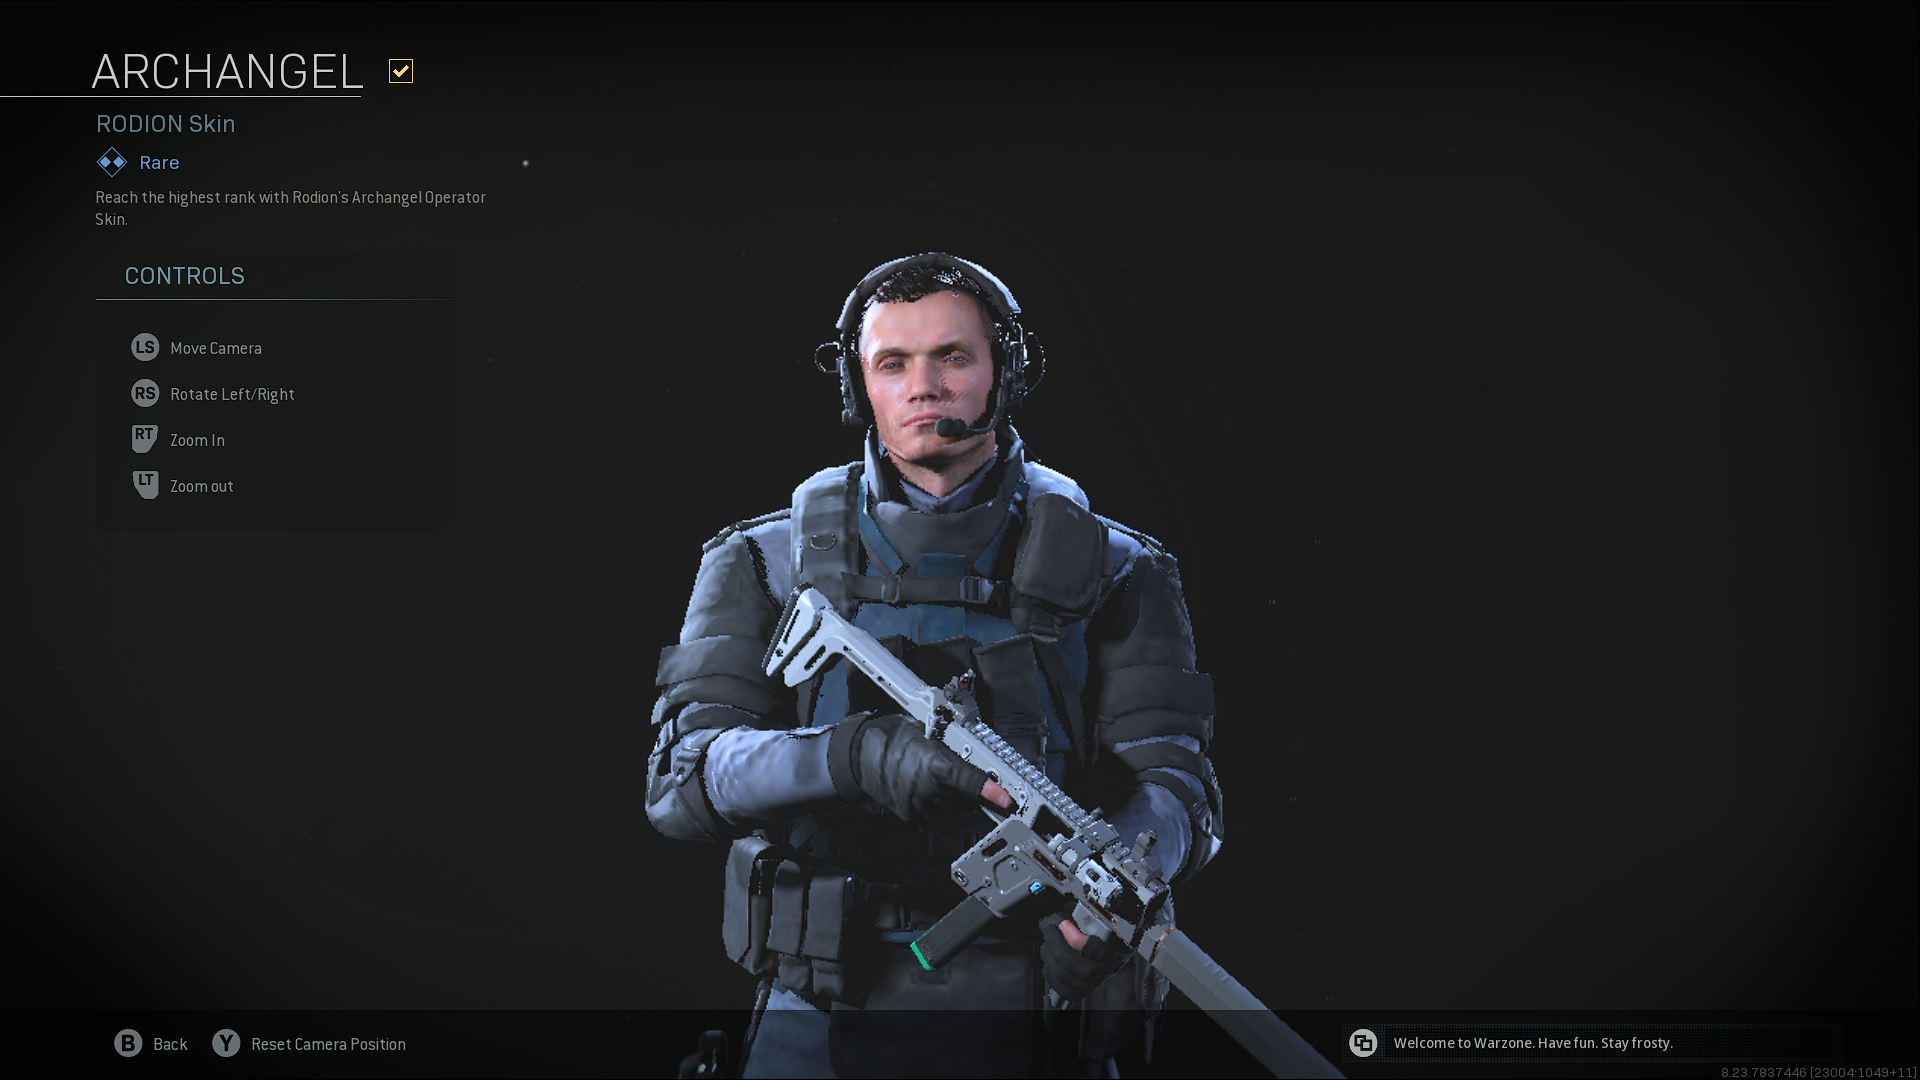 Call Of Duty Modern Warfare Warzone Season 5 Shadow Company Operators Bio Images Every Warzone Trailer To Date Gamer Full Stop Latest Video Game Information News